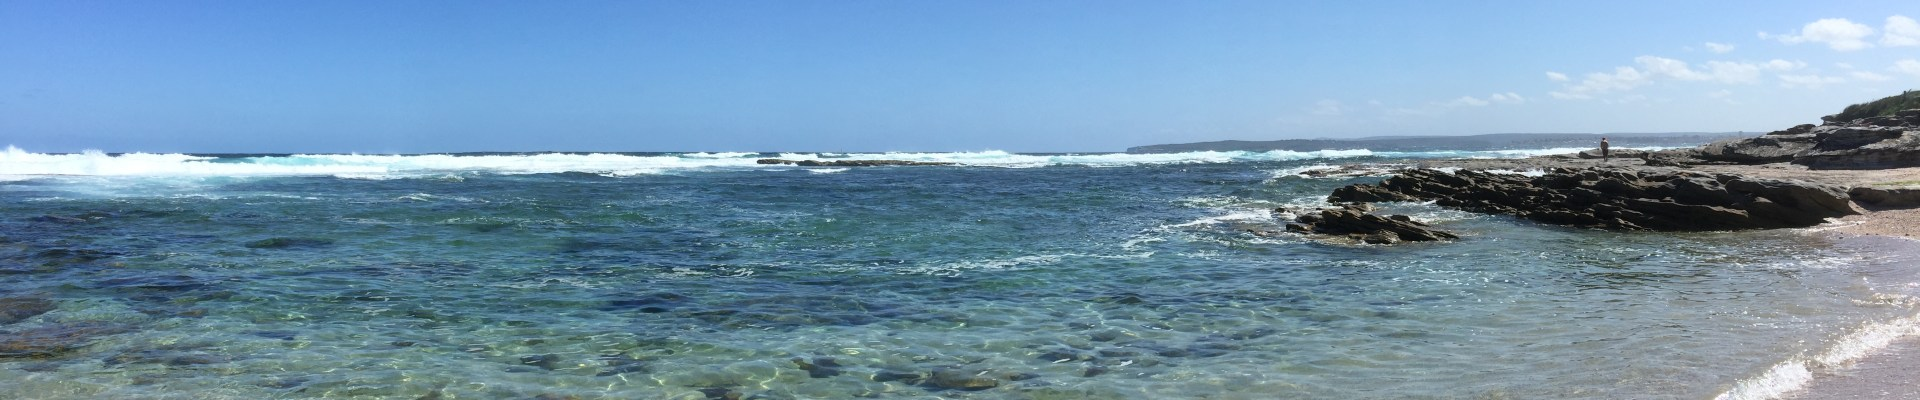 Guide | Kurnell to Cronulla coastal walk (Sydney)